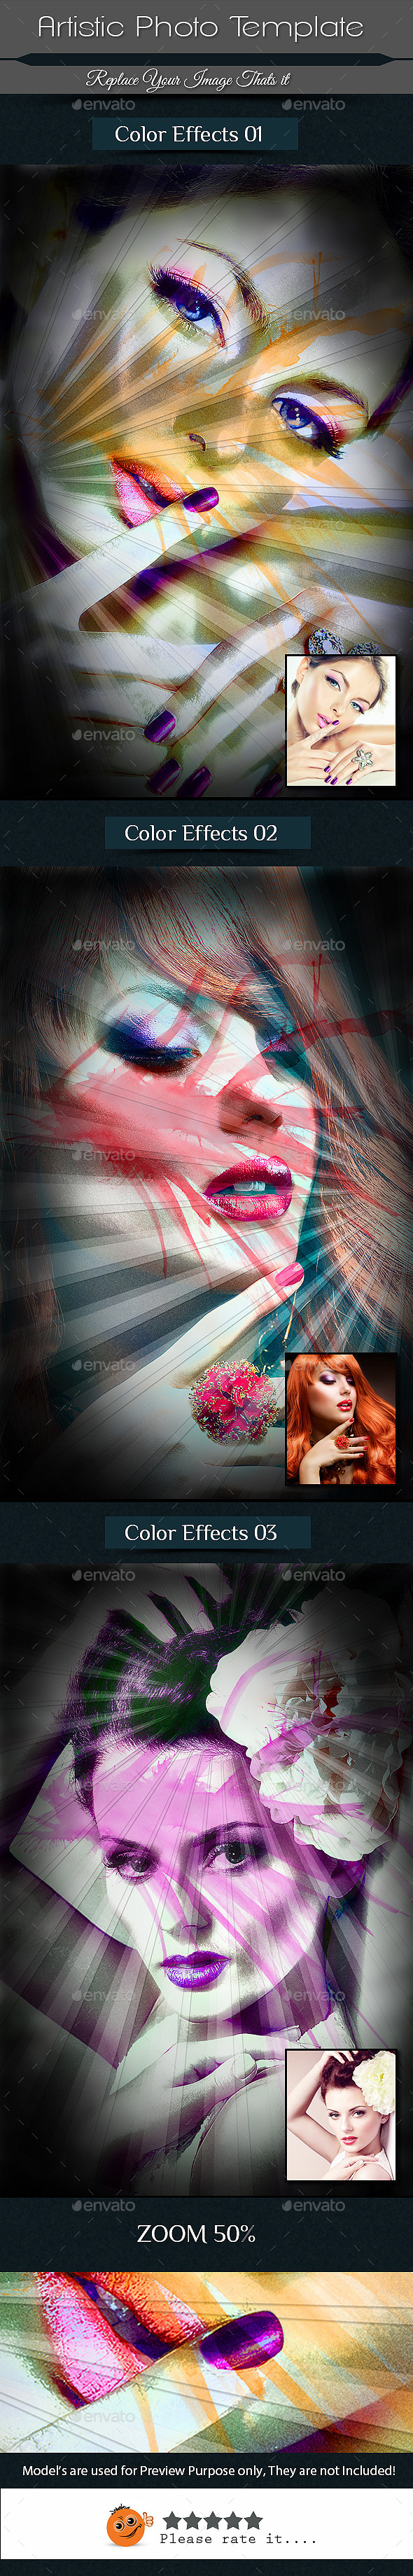 GraphicRiver Artistic Photo Frame Template 10498525